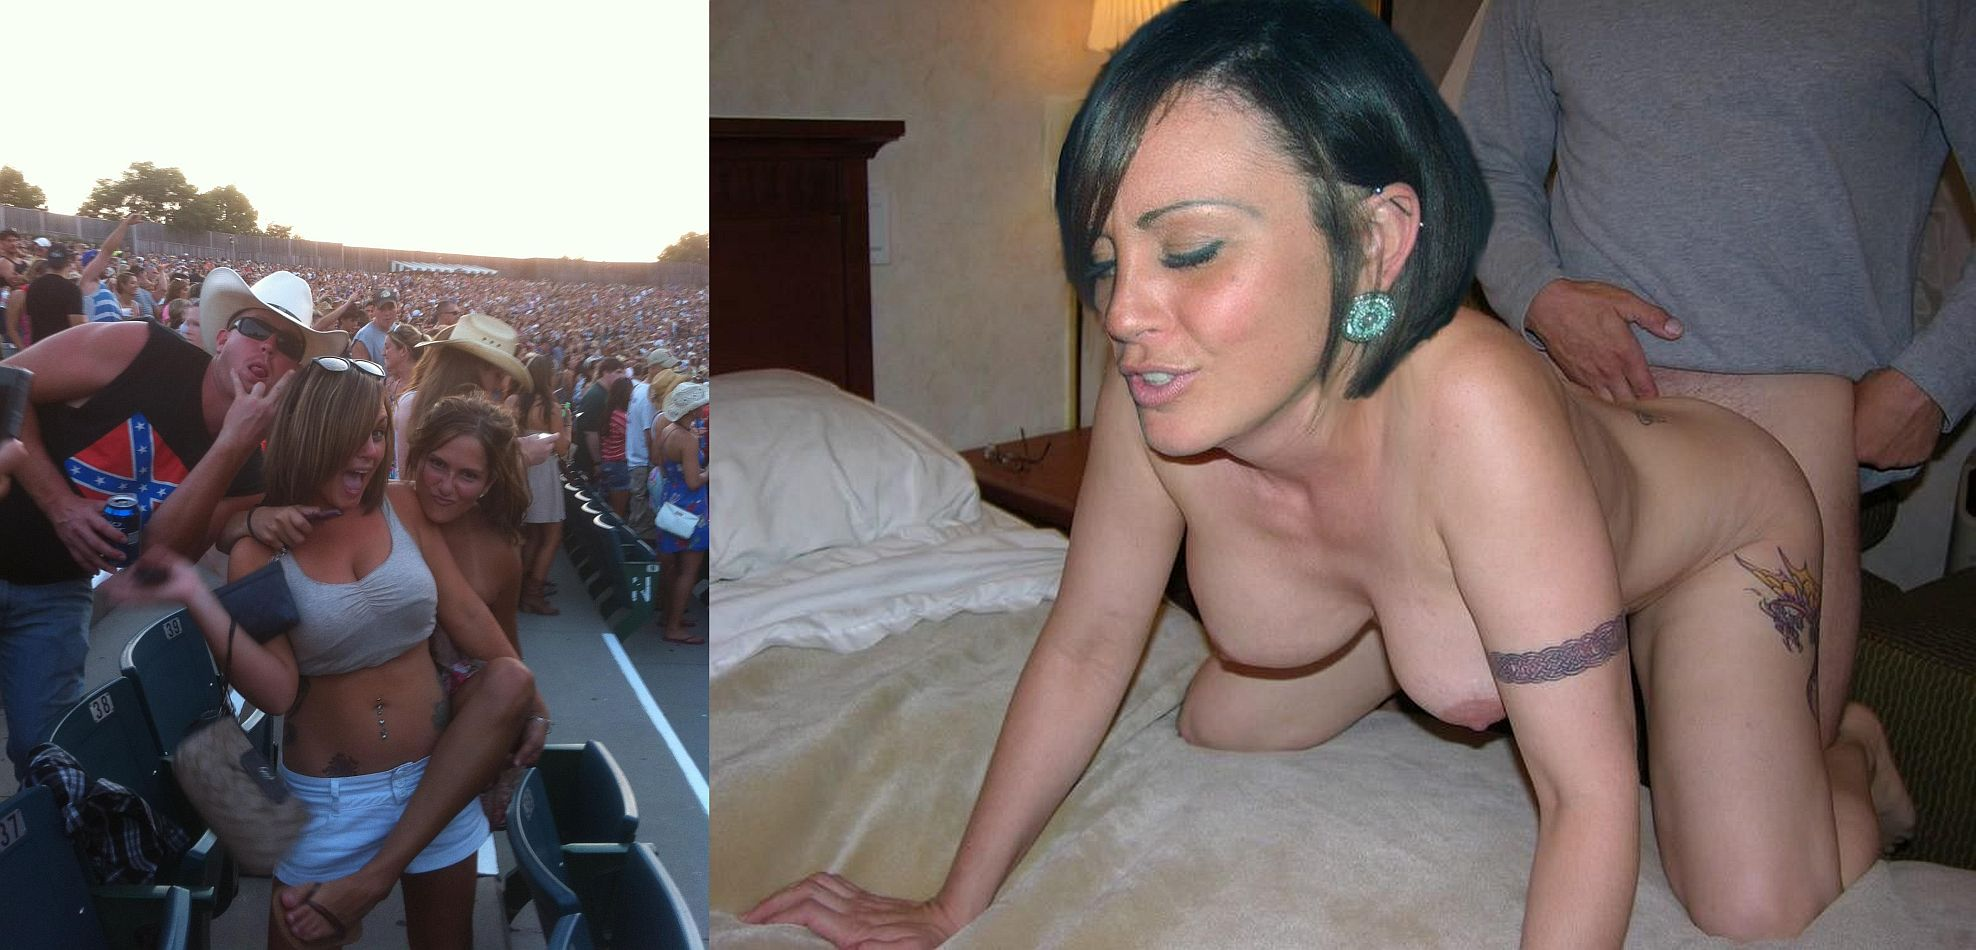 join. sexy chick makes deep throat orall service final, sorry, but